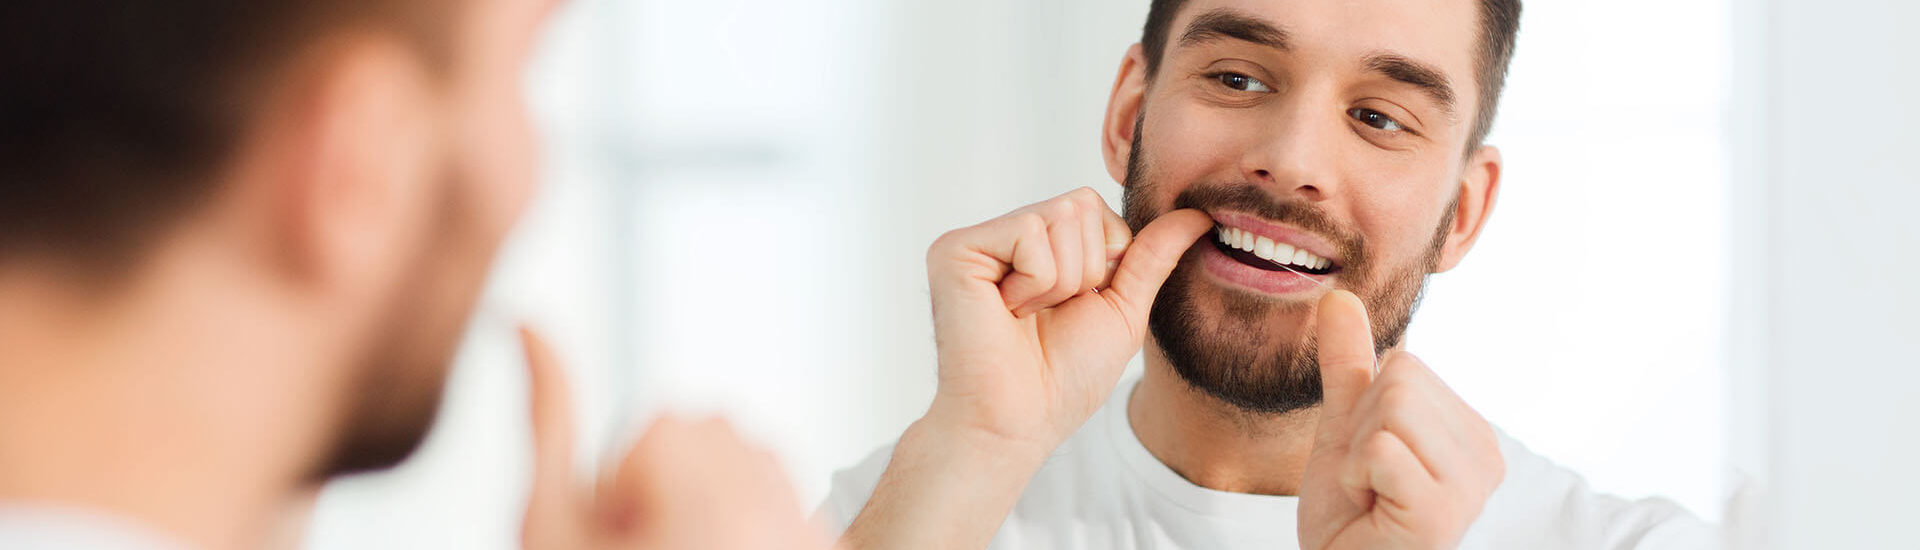 Periodontal Treatment in Coppell, TX